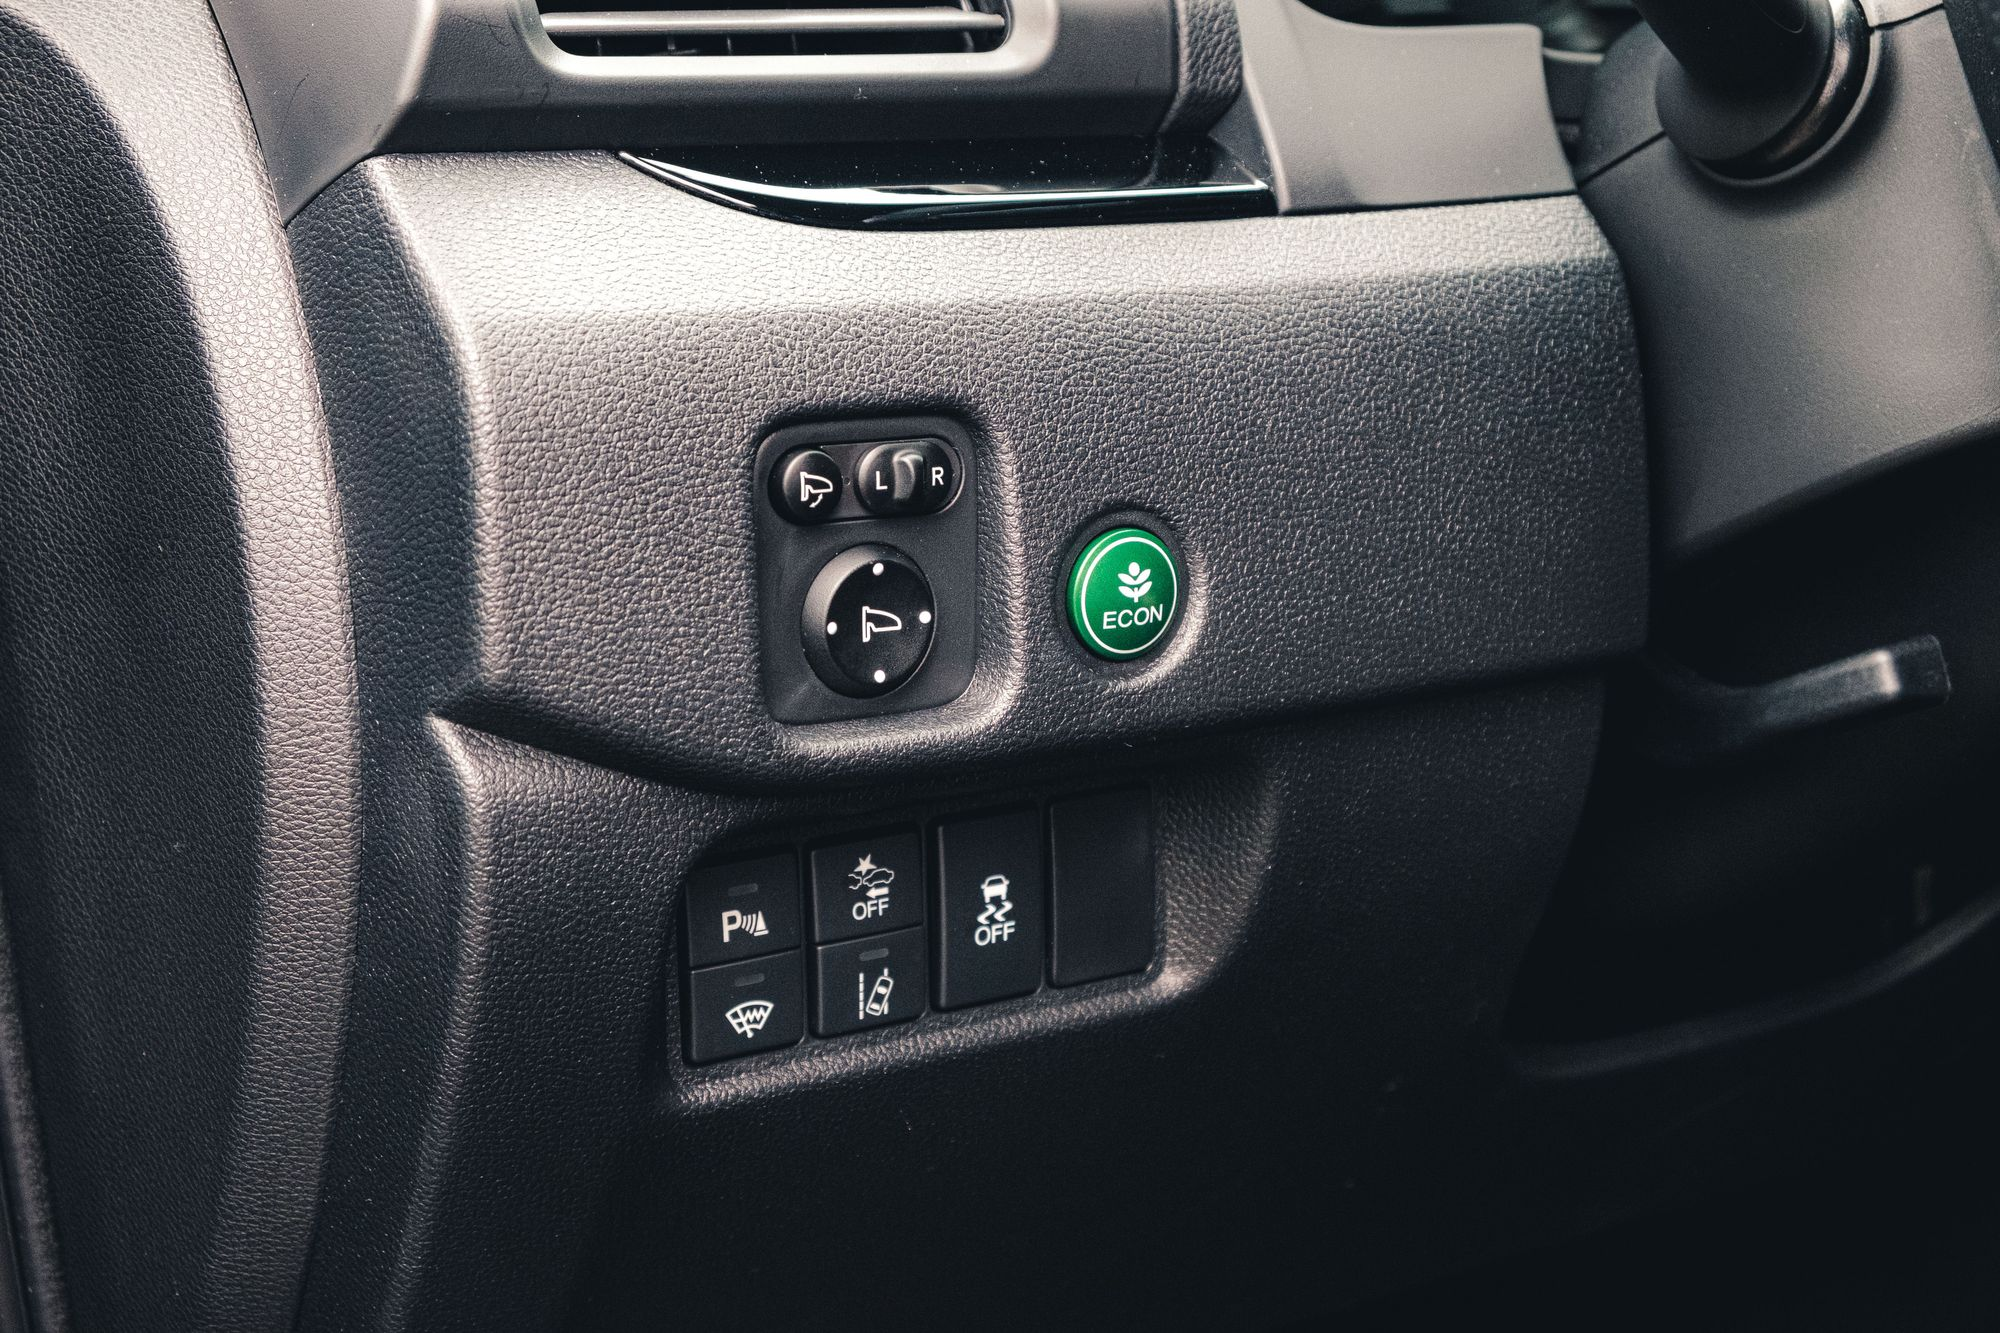 Honda Passport Safety Controls